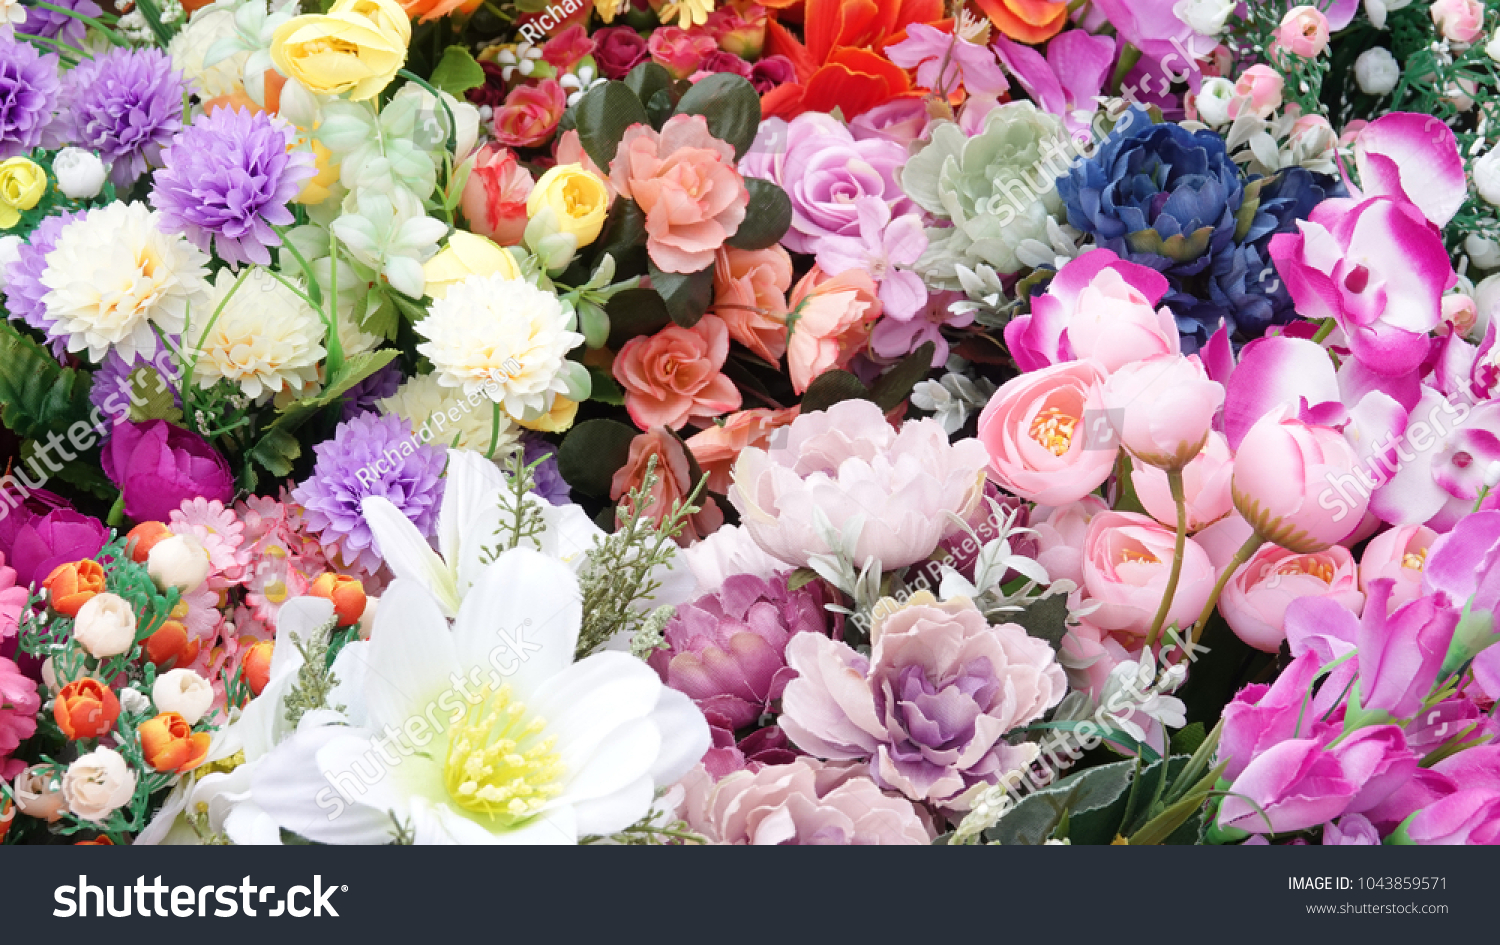 Artificial Flowers Colorful Bouquet Variety Synthetic Stock Photo